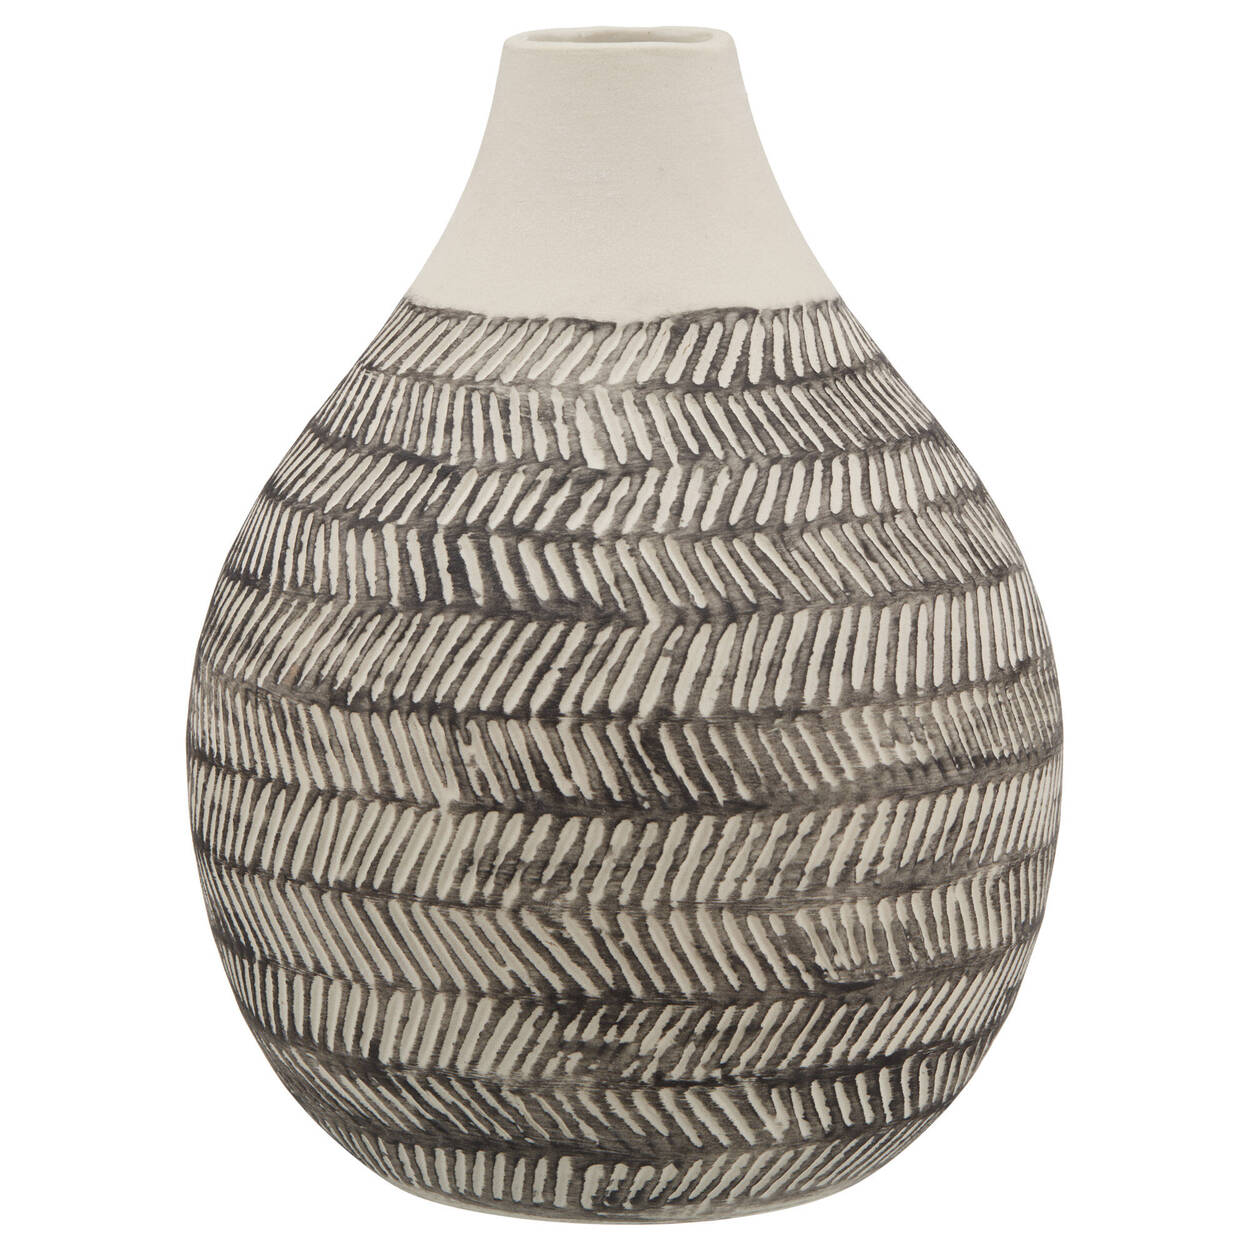 Two-Toned Textured Ceramic Table Vase